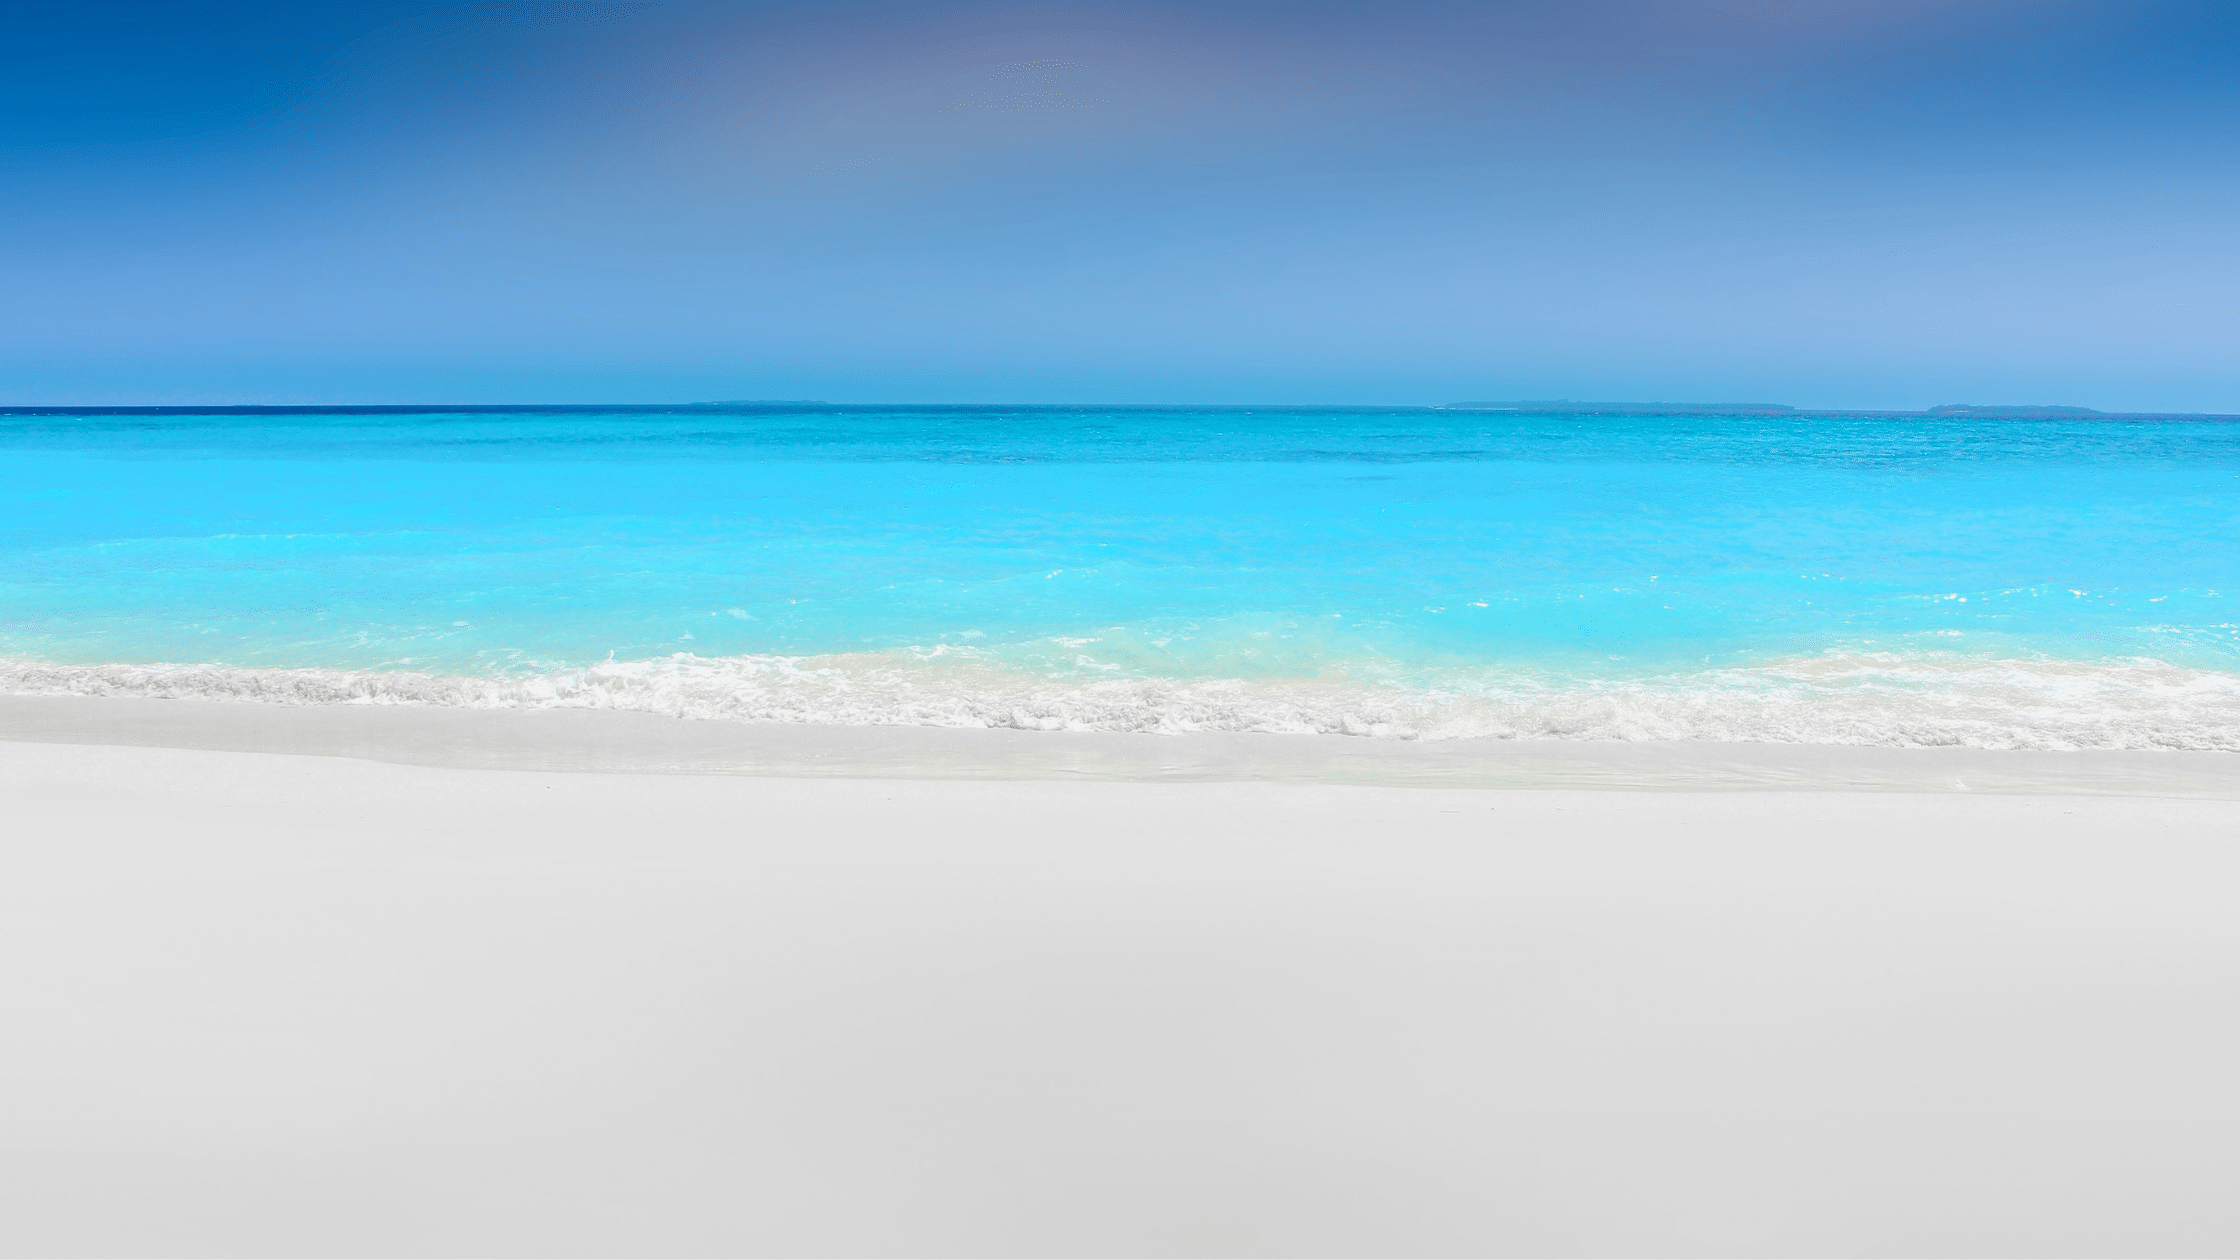 Summer Sea website Banner